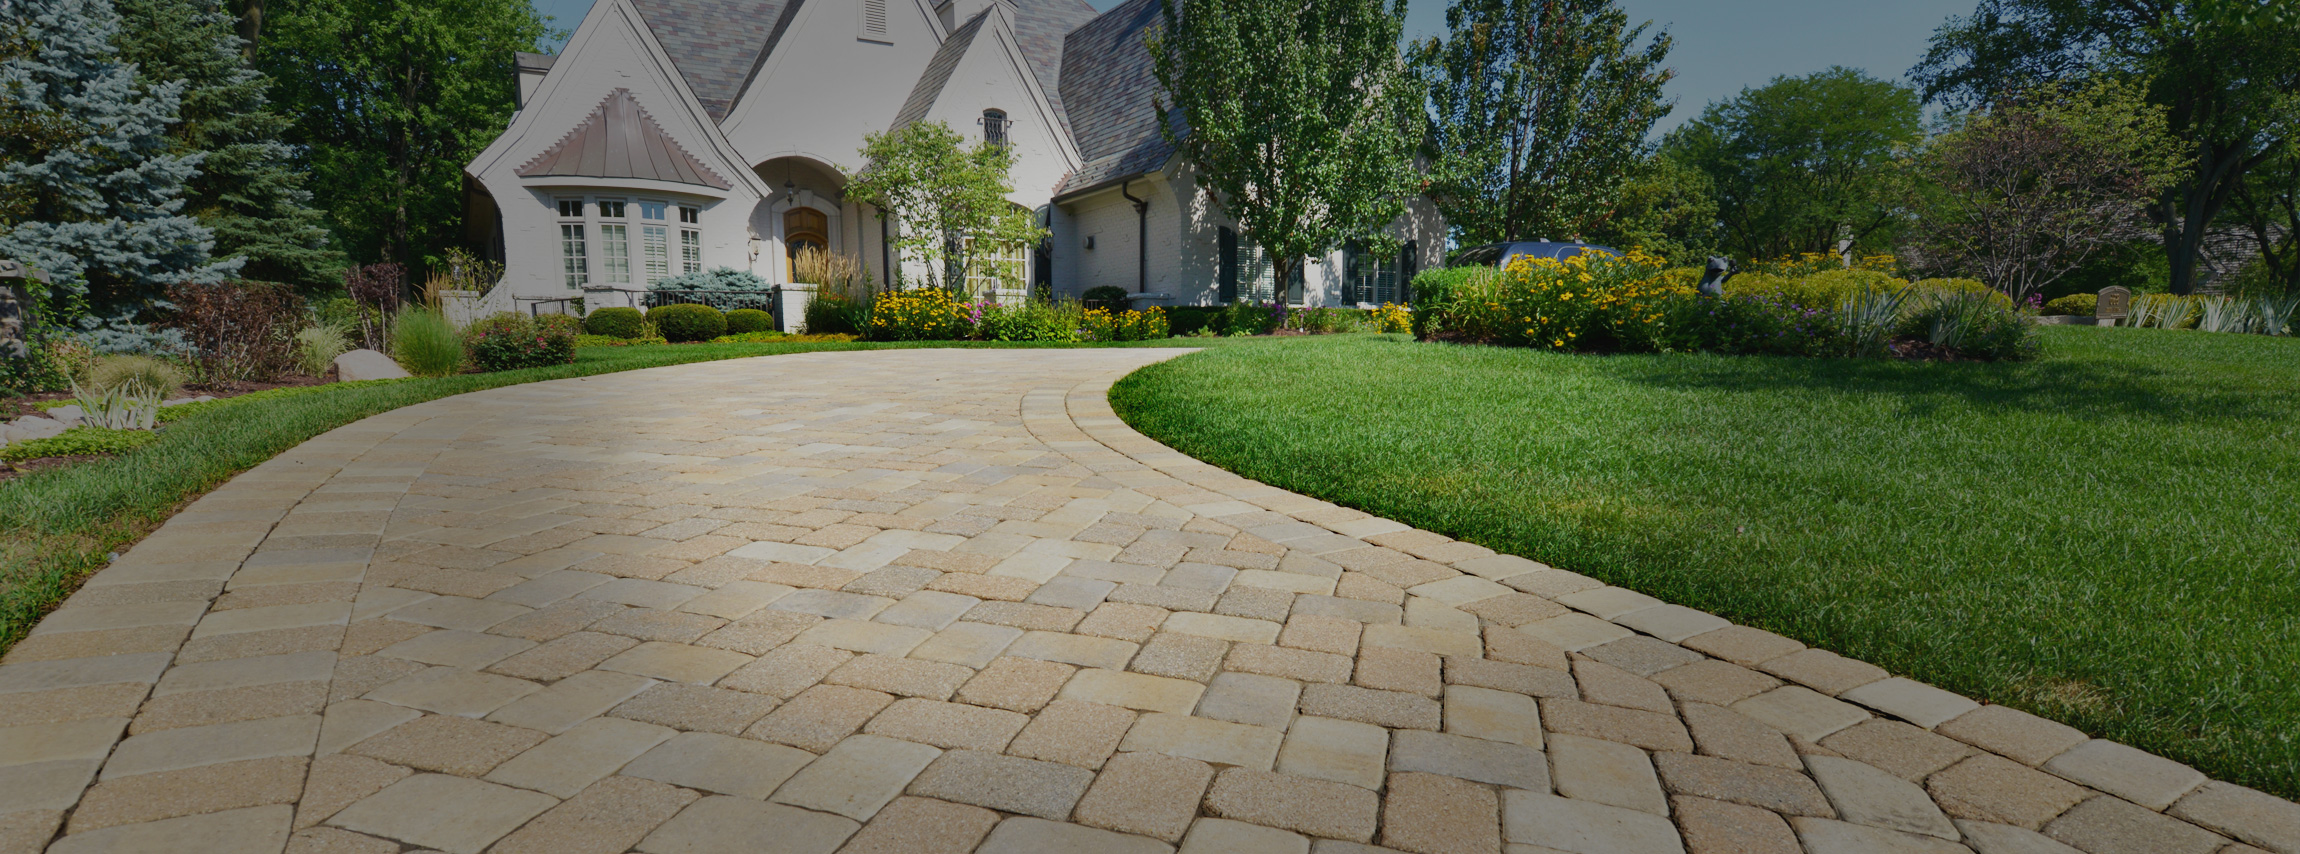 paving specialists in cambs